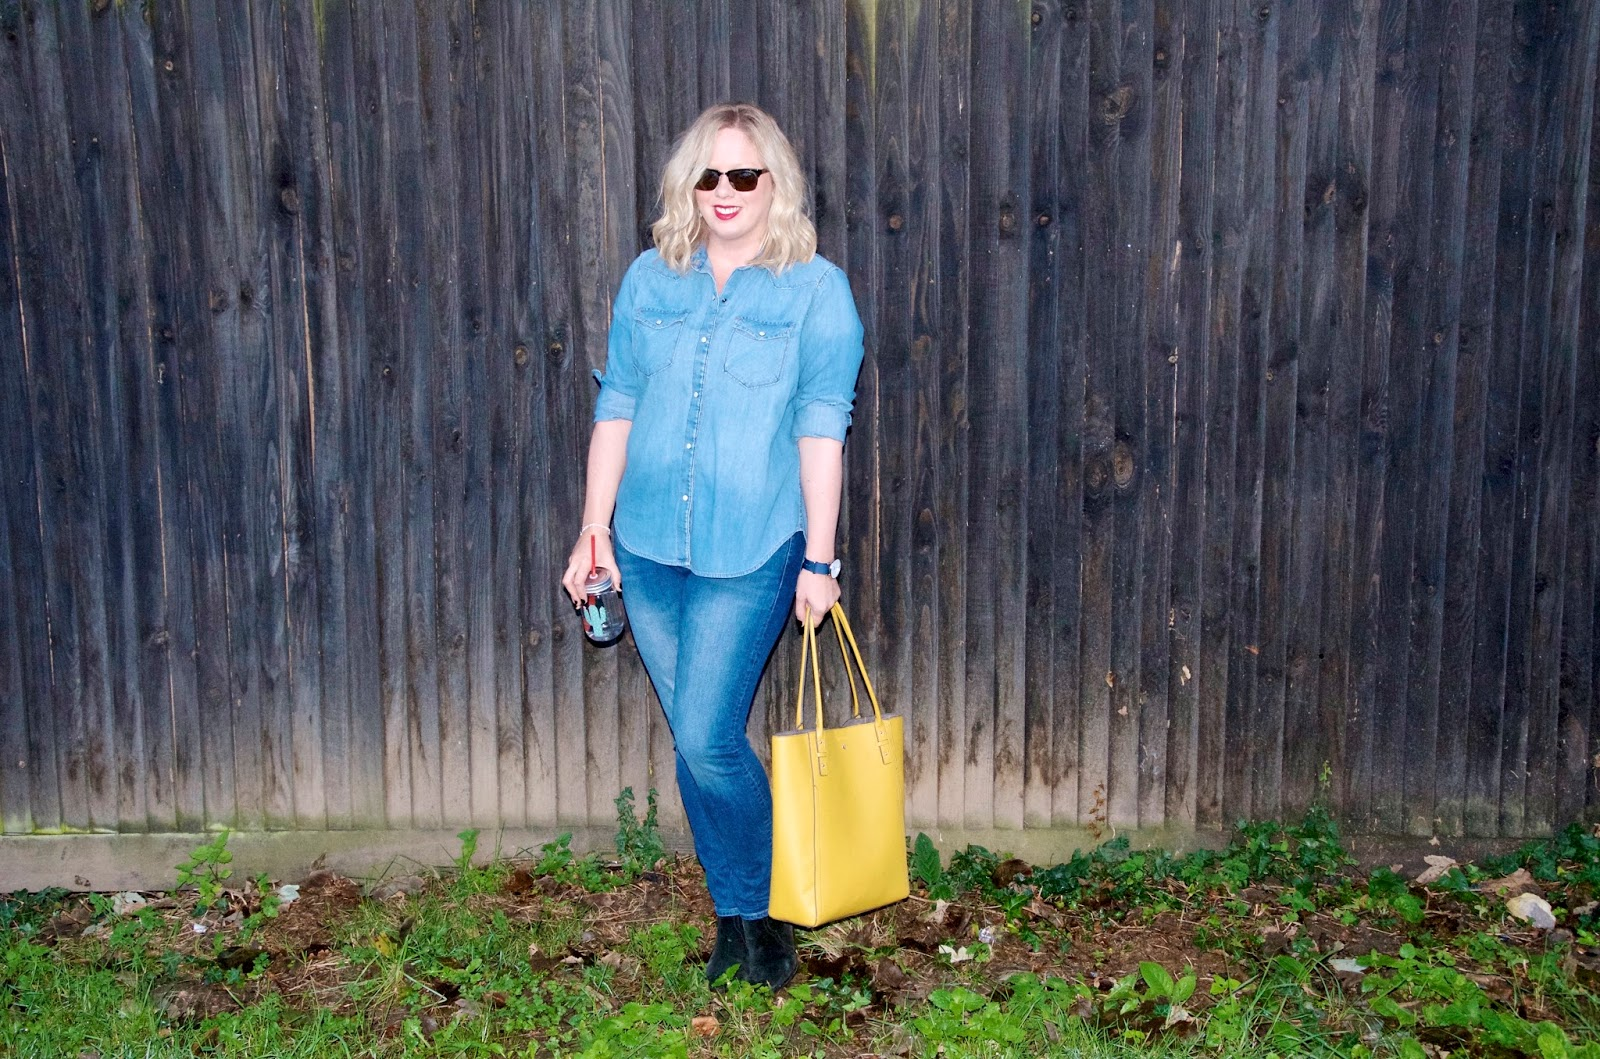 Denim western style shirt with skinny jeans and yellow bag